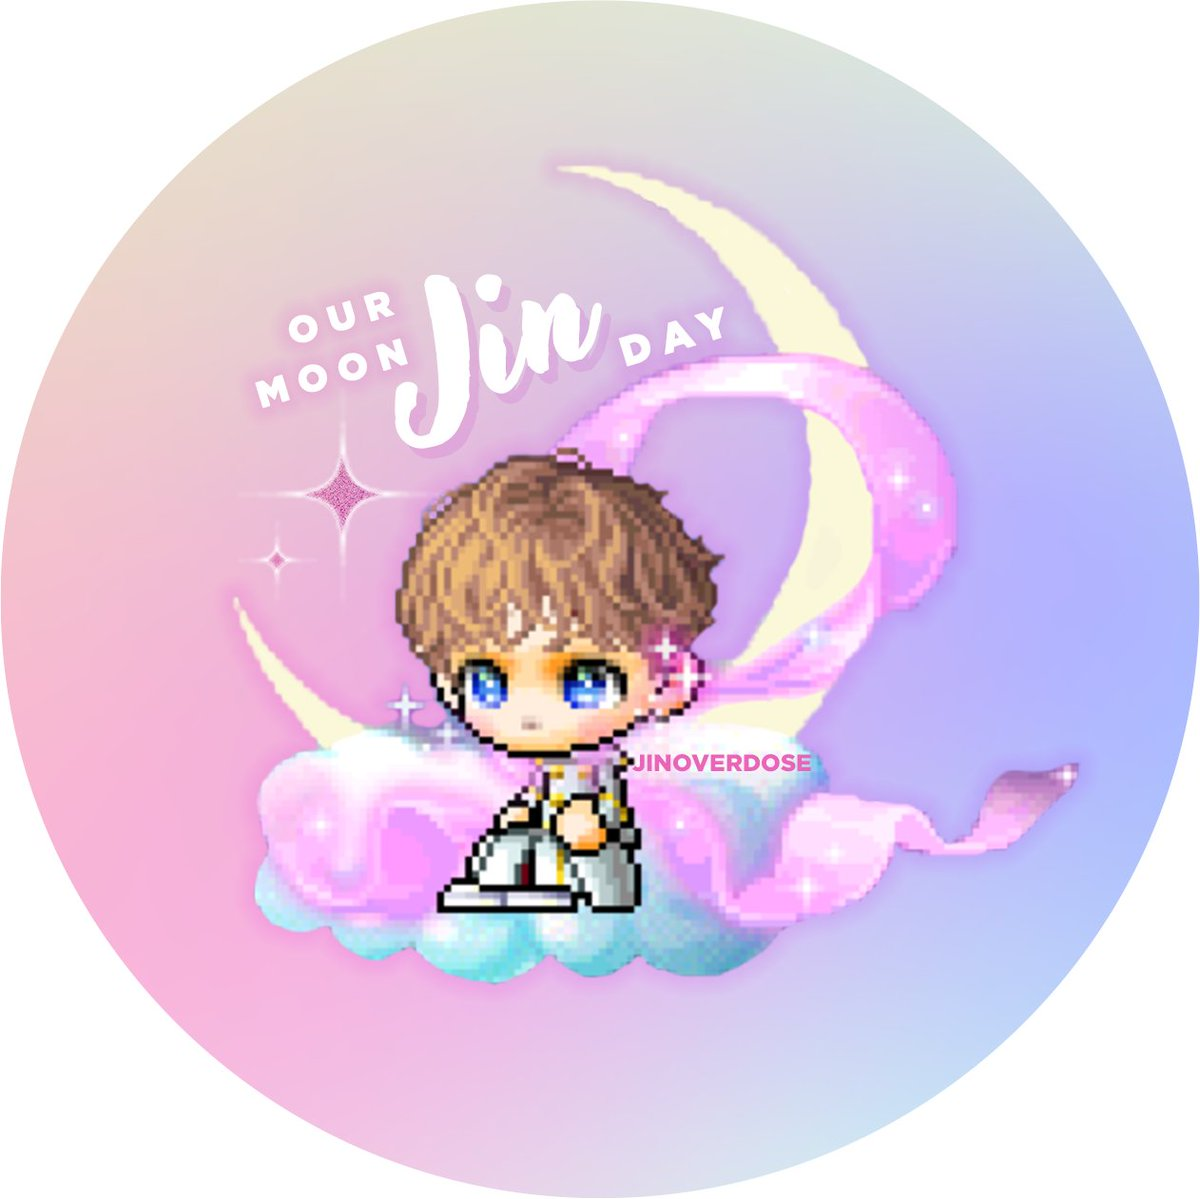 @hypsuga 。゚・☽⋆ Moon Jin Birthday Layouts  ✦⠁  Feel free to use, just credit me if you're using it 🥰 Let's celebrate #JIN's birthday on Dec. 4 by joining the #MapleStoryForJin Project 💎💗   #OurMoonJinDay #방탄소년단진  #BTSJIN #SEOKJIN @BTS_twt